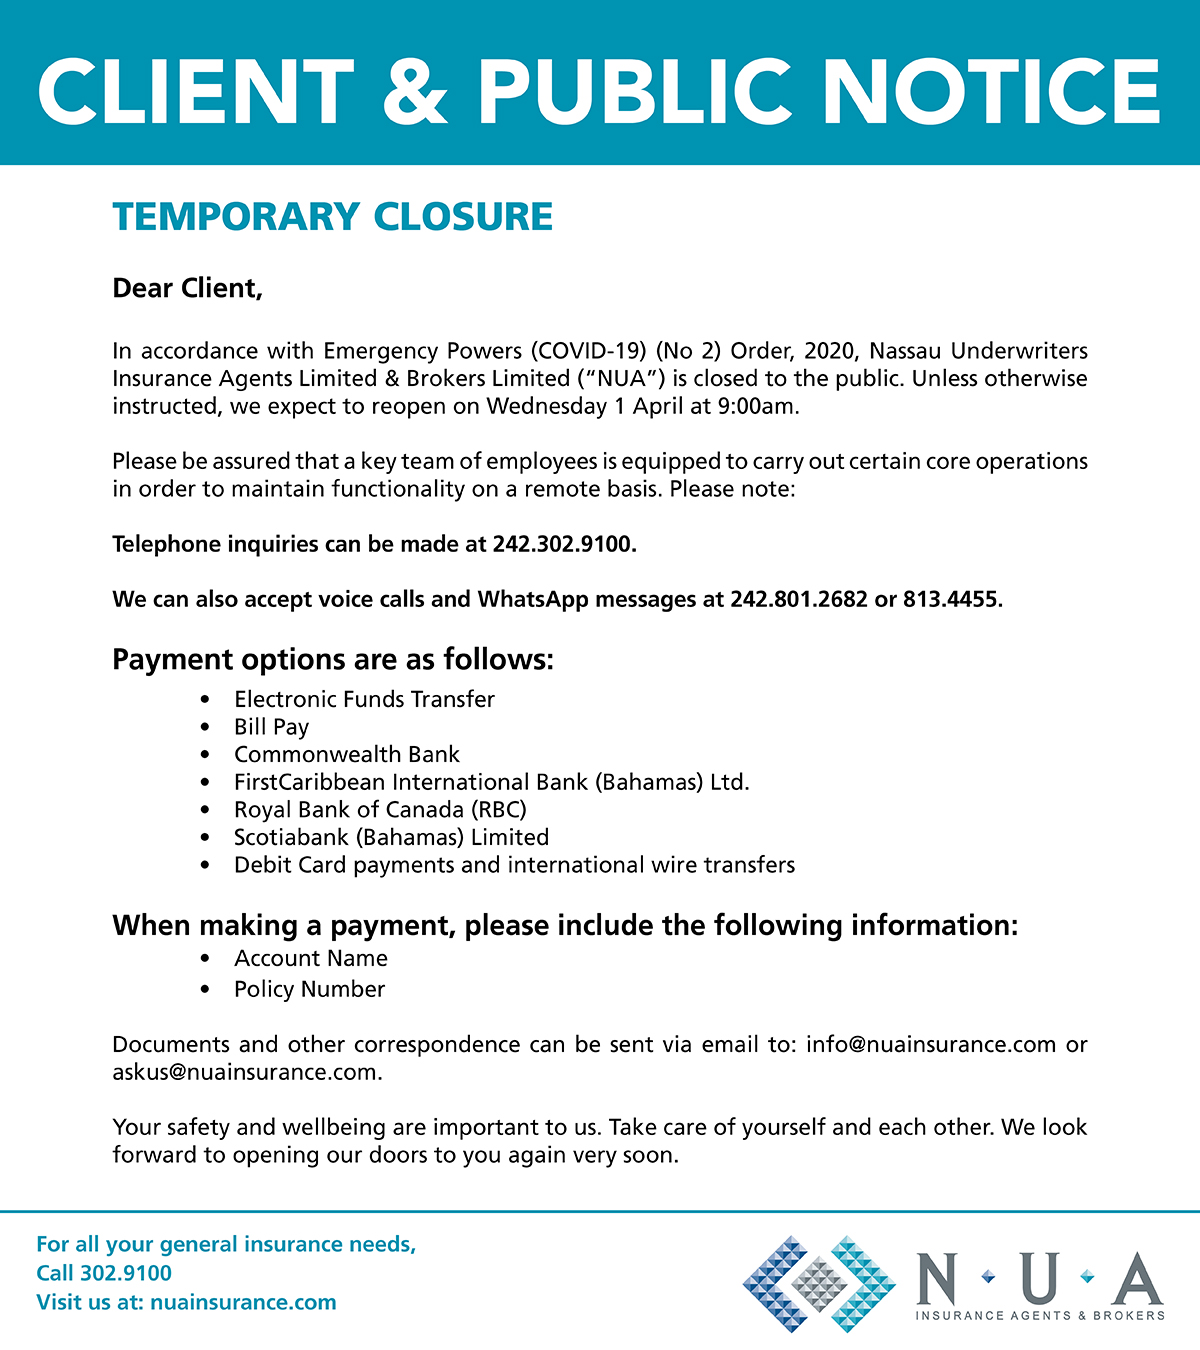 NUA Insurance Agency & Brokers Notice of Office Closure